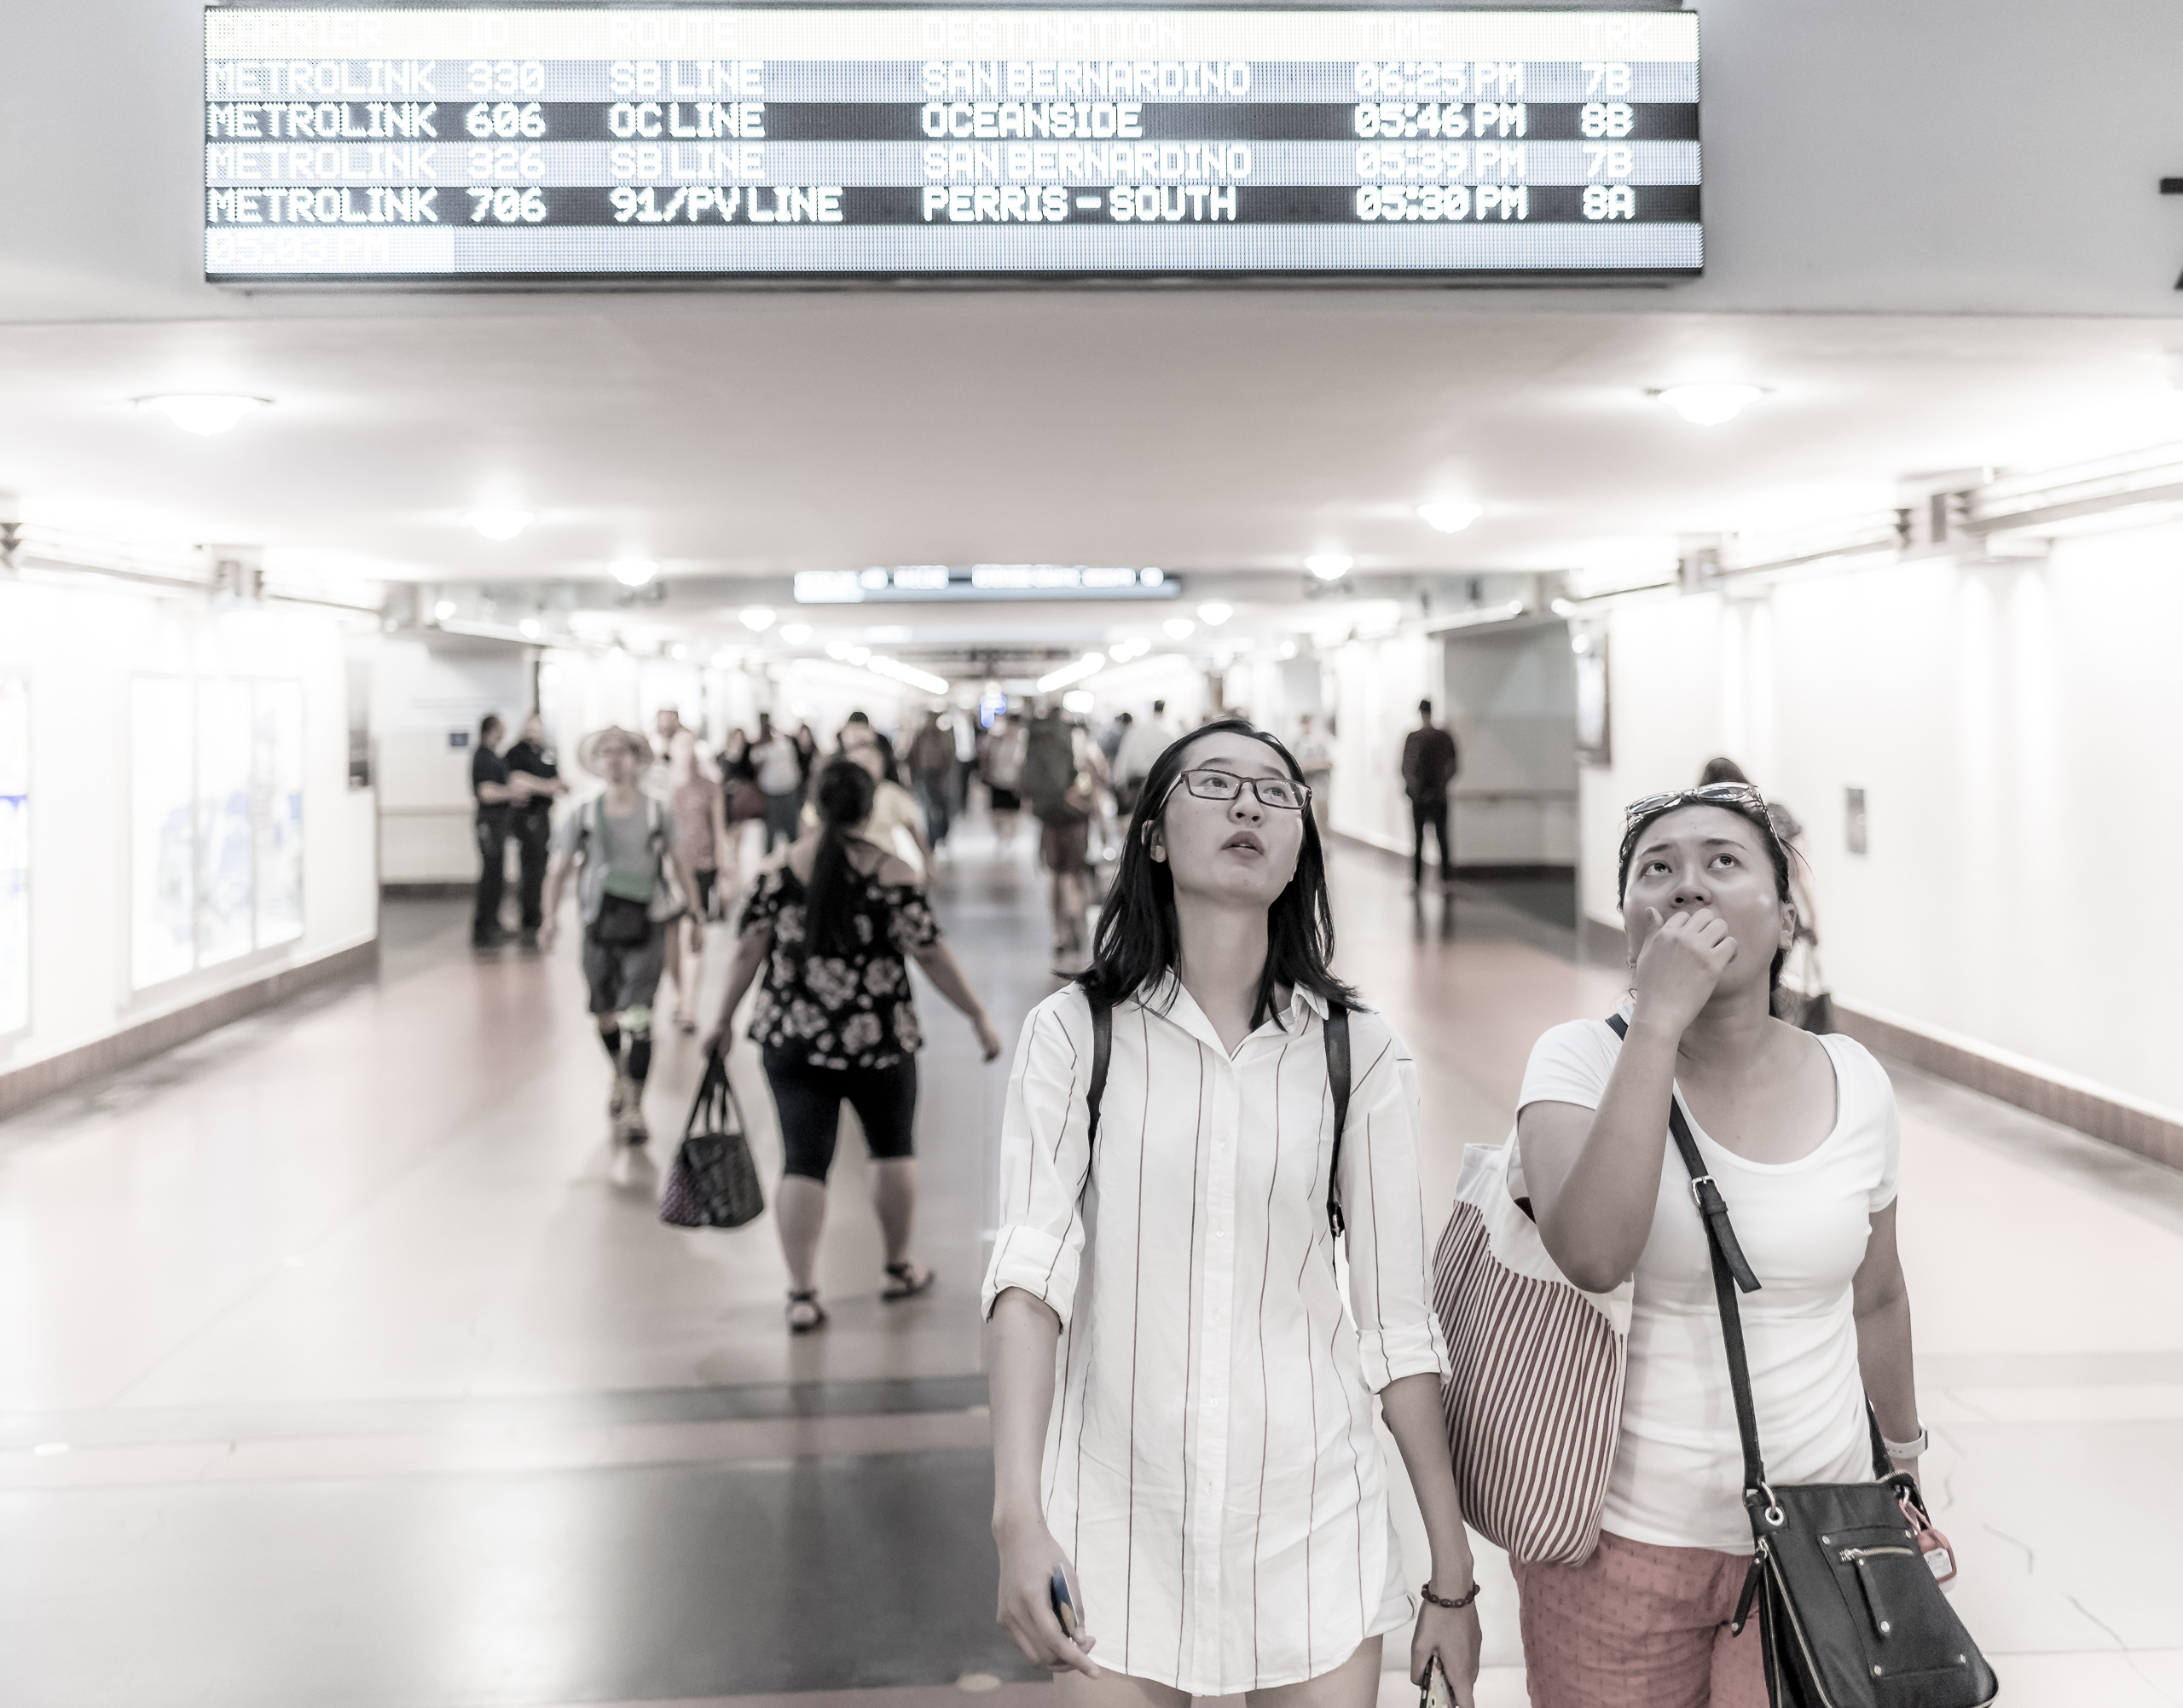 Two people walking through the main corridor at Union Station in Downtown Los Angeles and looking up at a schedule board